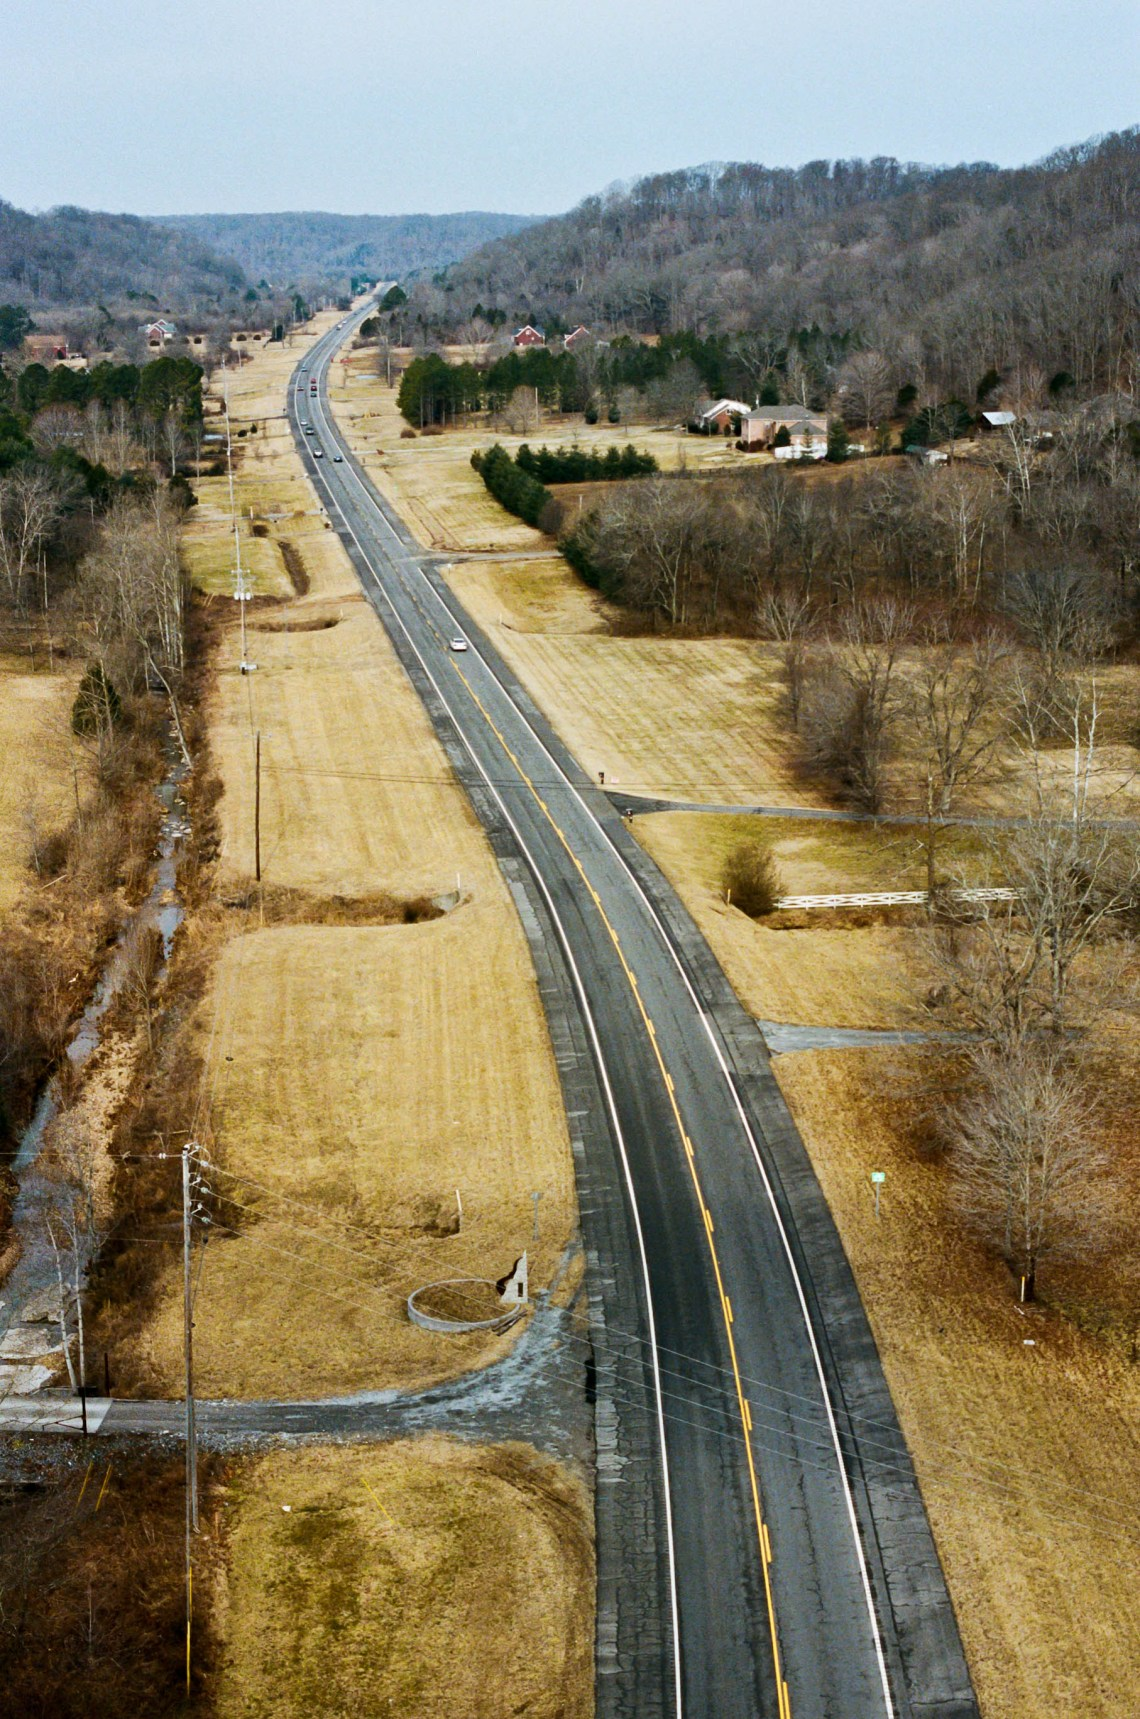 Highway 96 looking Northwest as seen from the Natchez Trace Bridge in Franklin Tennessee